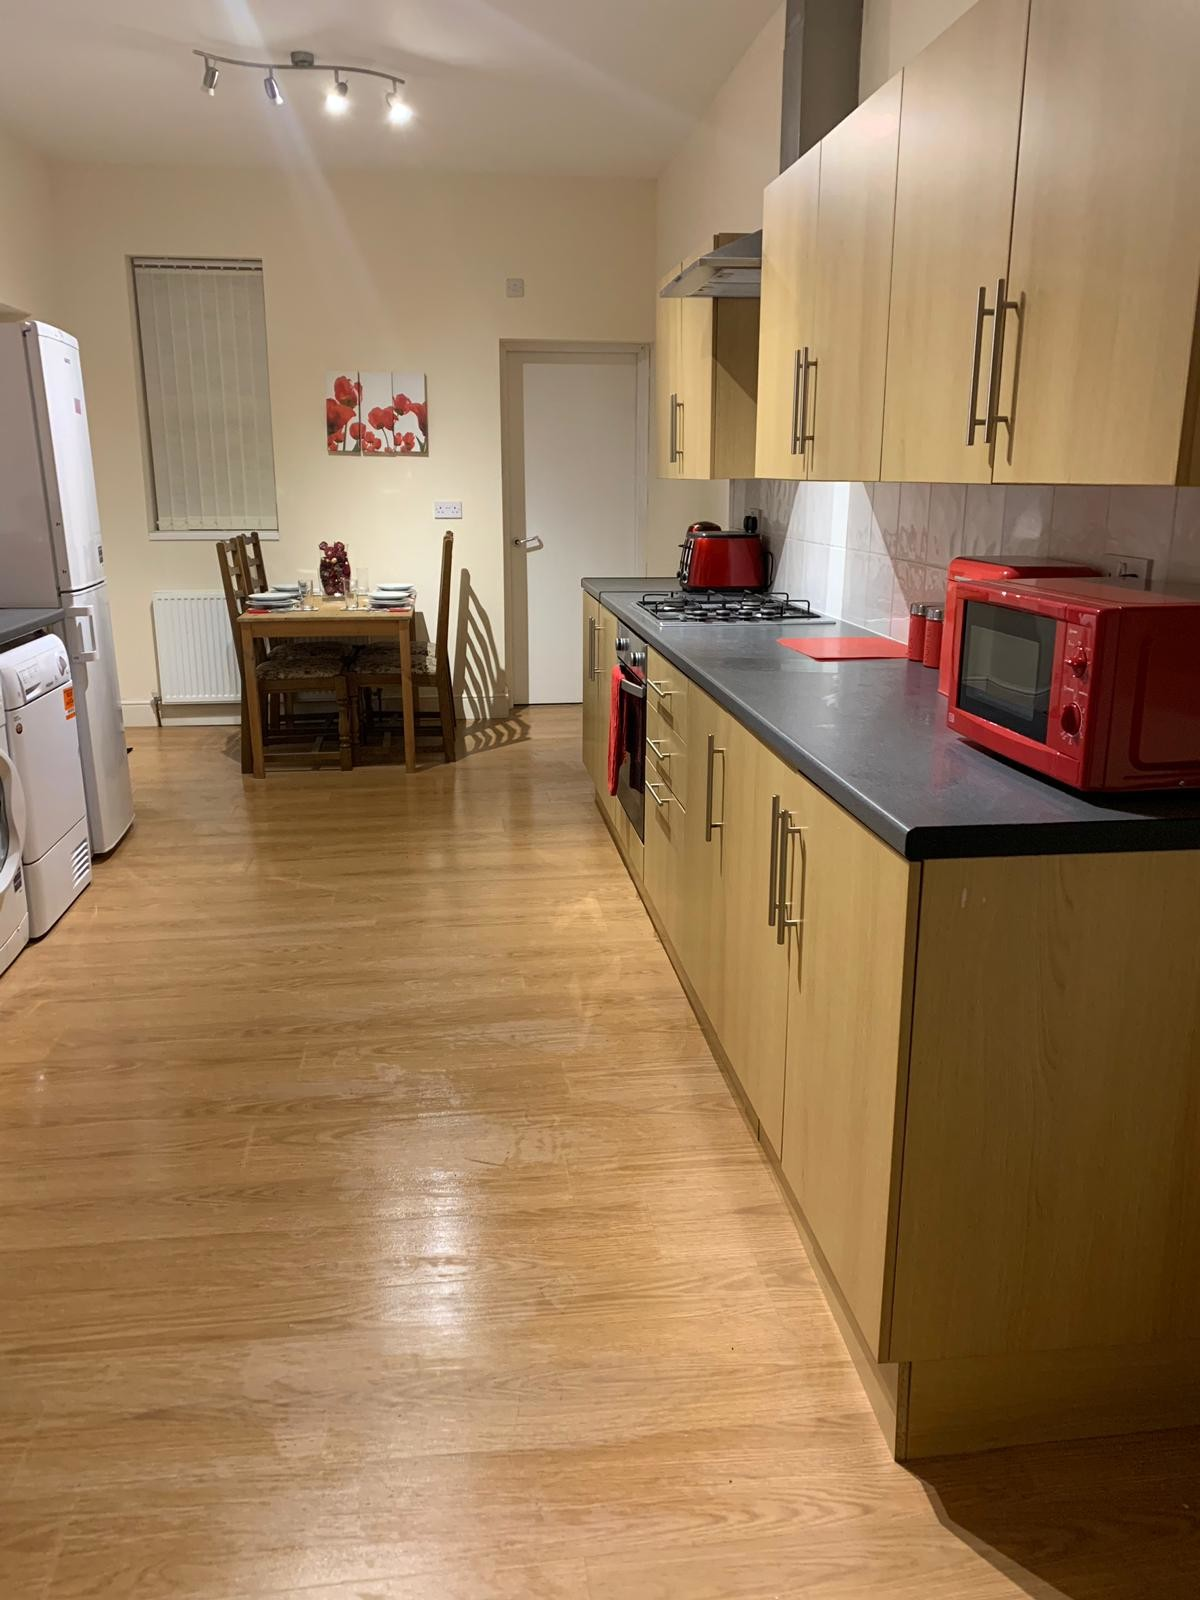 very-large-double-bedrooms-shared-house-quiet-fenton-10-minutes-city-centre-bf3fa07dcbdbcd2981d85f22ae41b46b